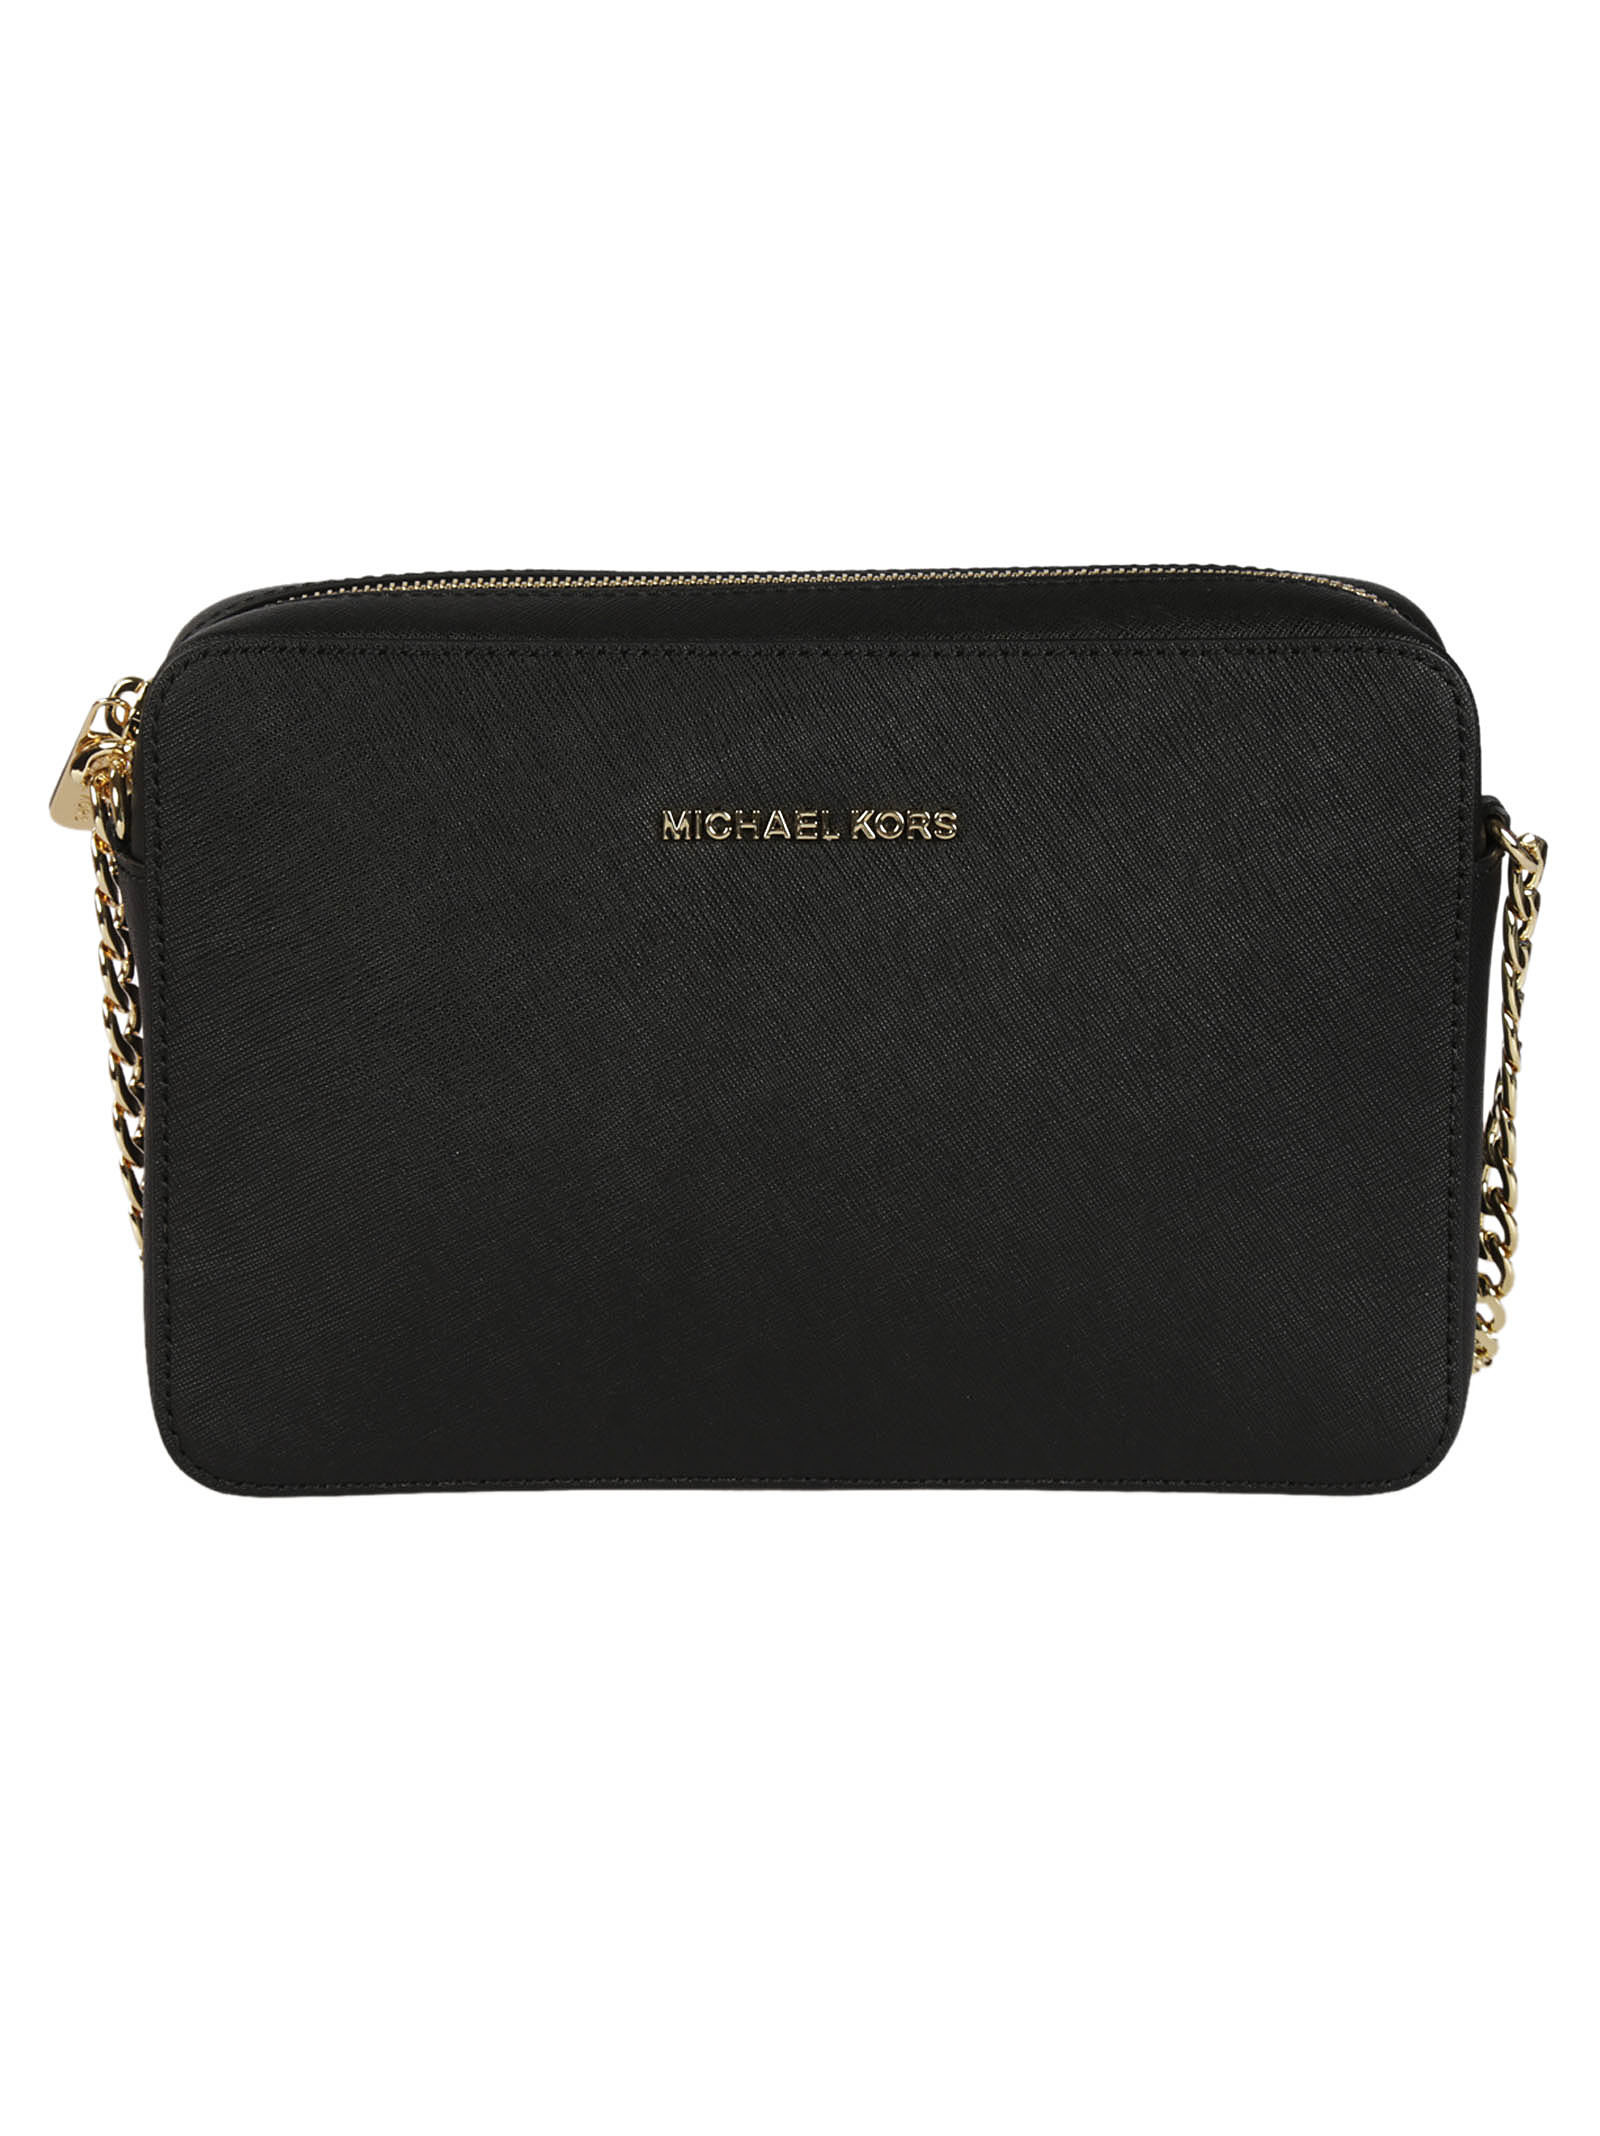 Michael Kors Large Jet Set Shoulder Bag